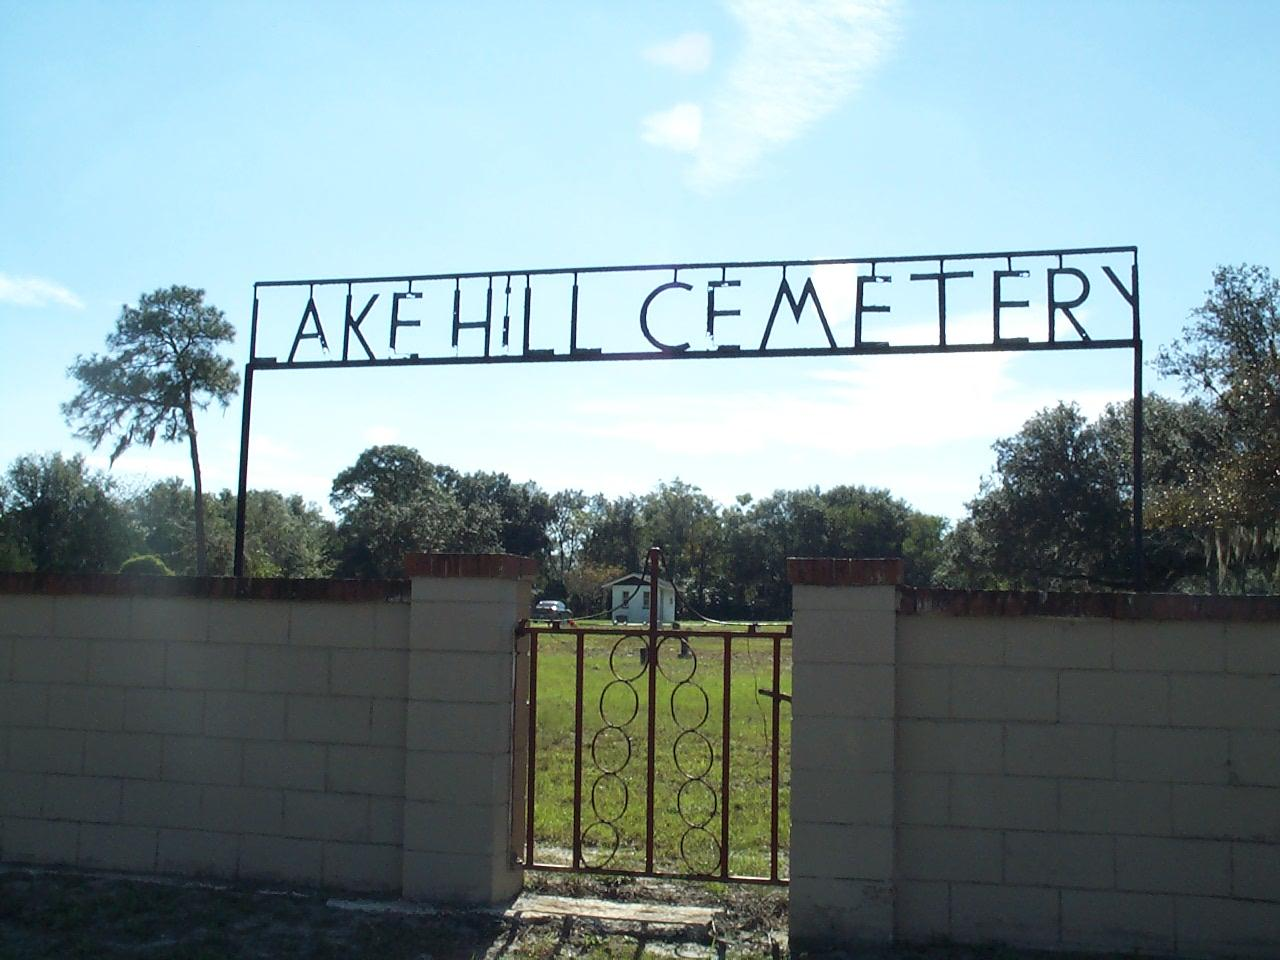 lake hill cemetery located at 5950 old winter garden road in orlando florida in 2001 the cemetery just west of orlando is the site of the remains of